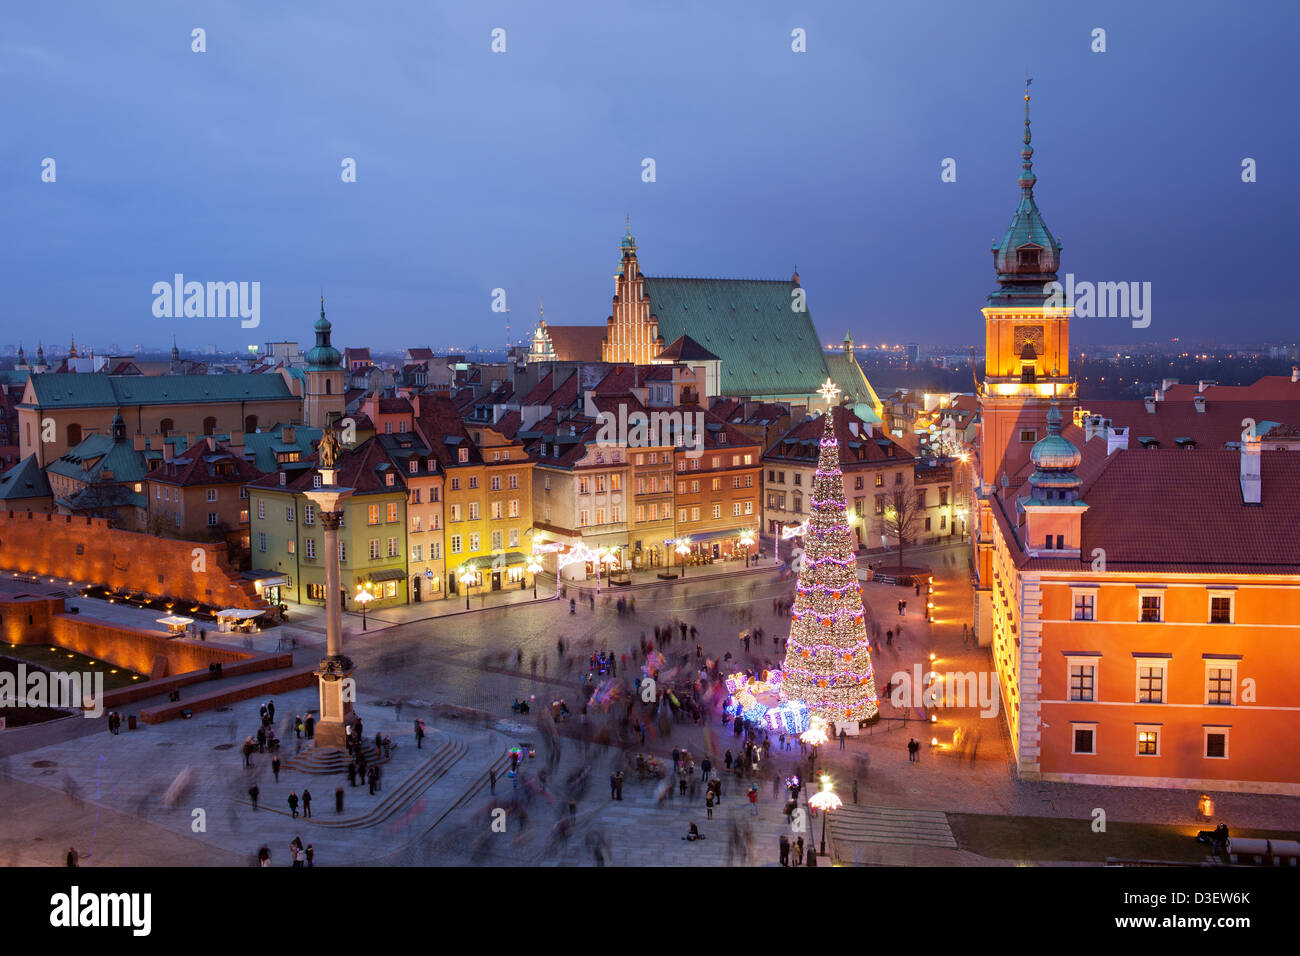 Picturesque Old Town of Warsaw in Poland illuminated at evening, during Christmas time. - Stock Image